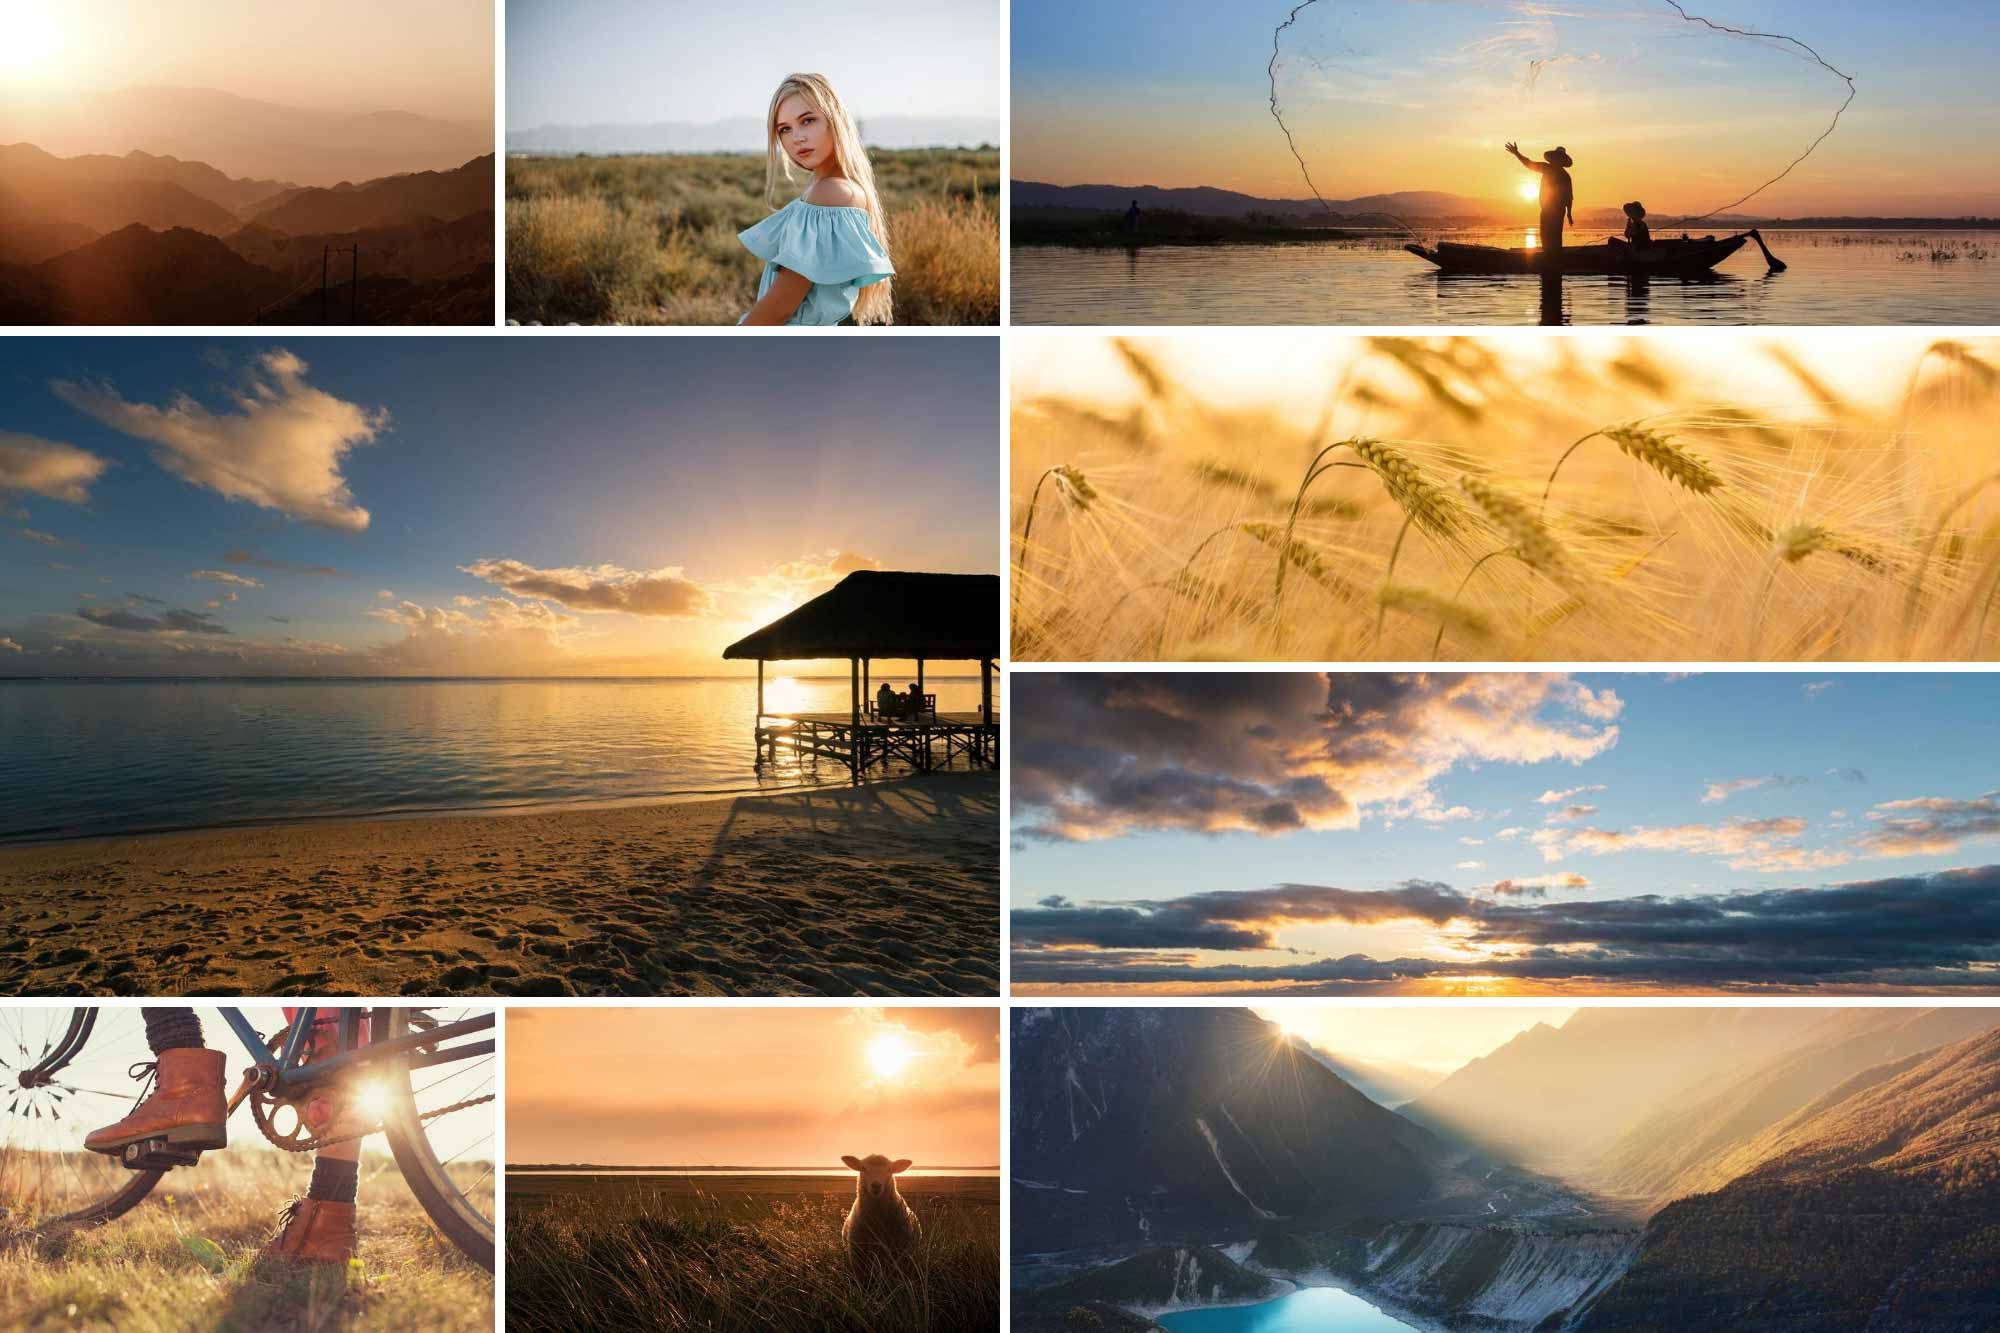 25 Golden Hour Images for Photographic Inspiration